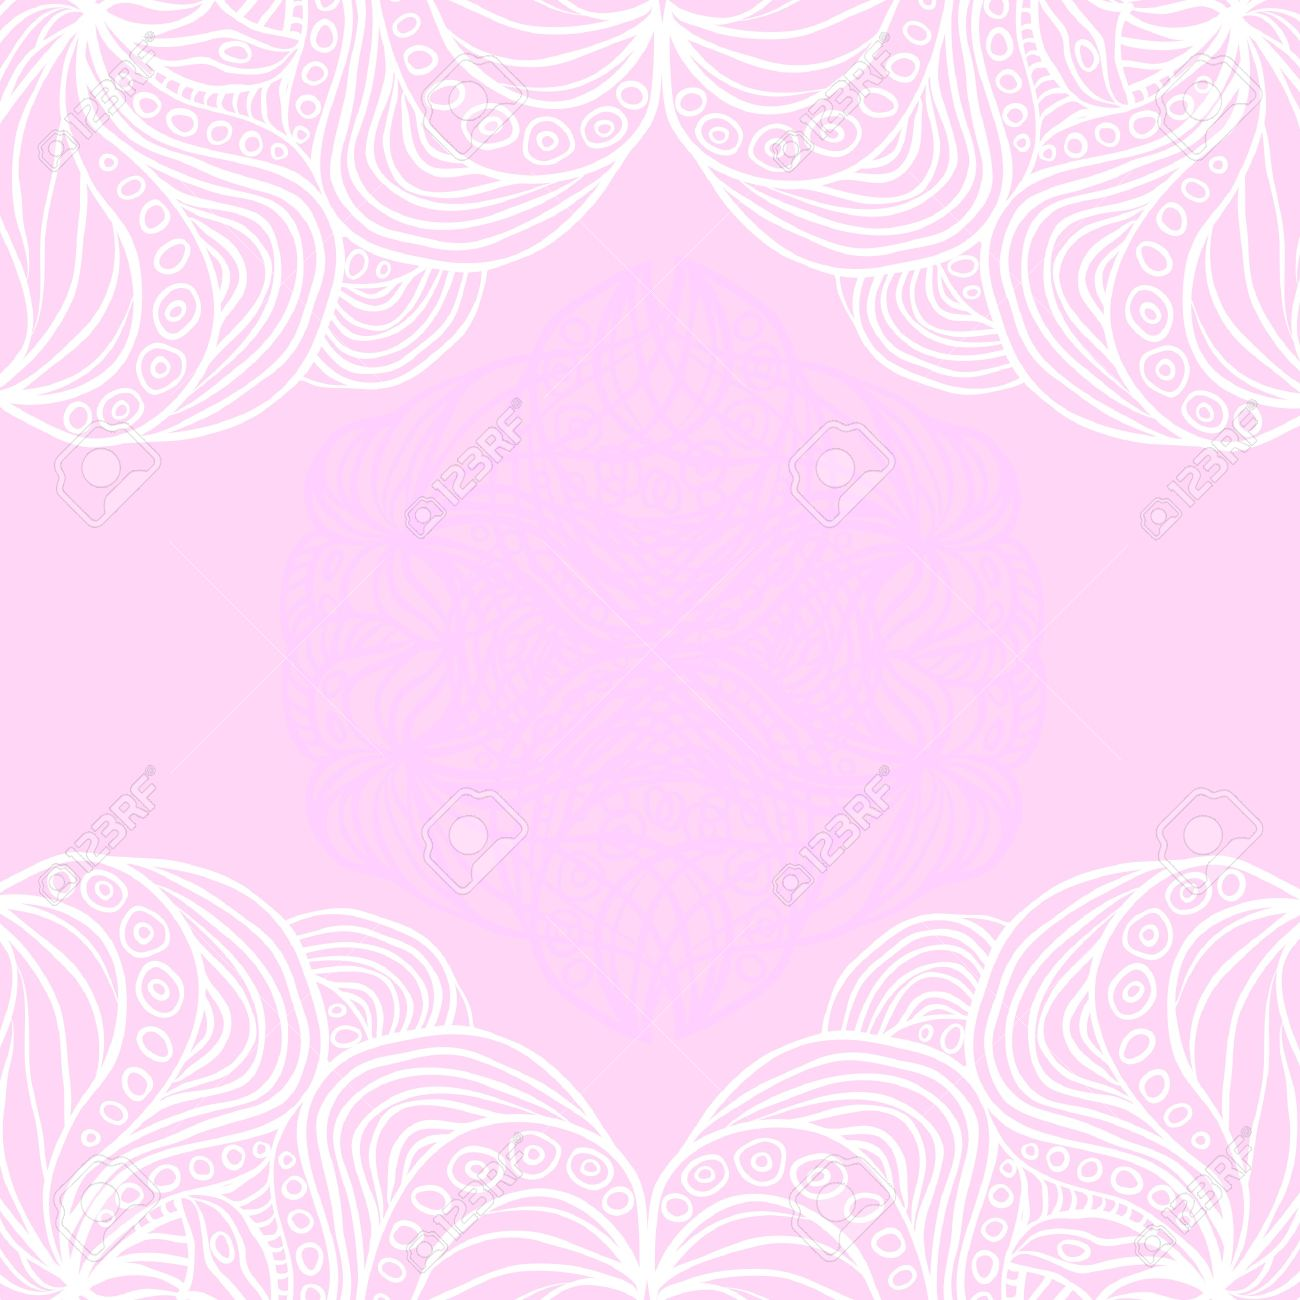 Abstract White Borders On Pink Background Pattern Can Be Used